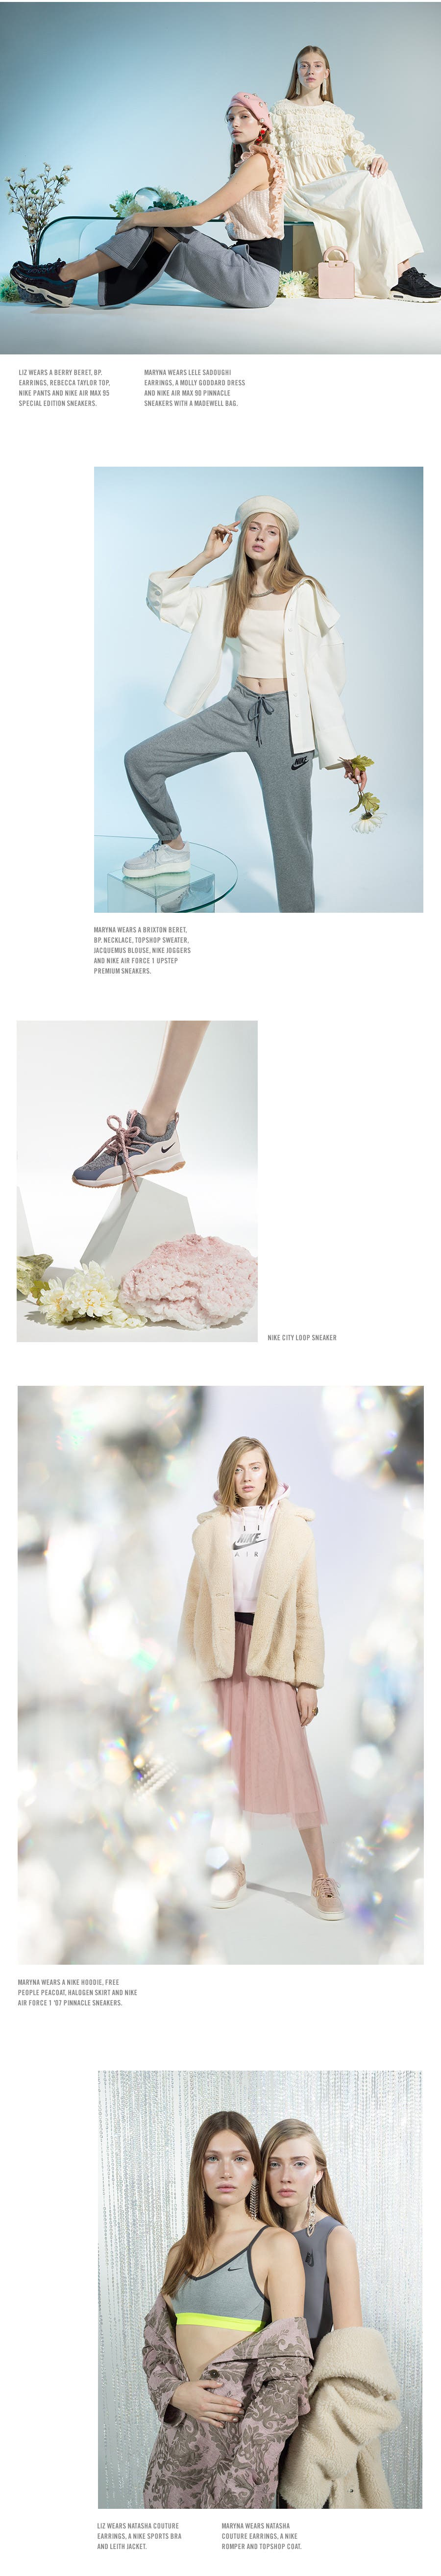 Nordstrom x Nike Crystal Wonderland: holiday dressing editorial.